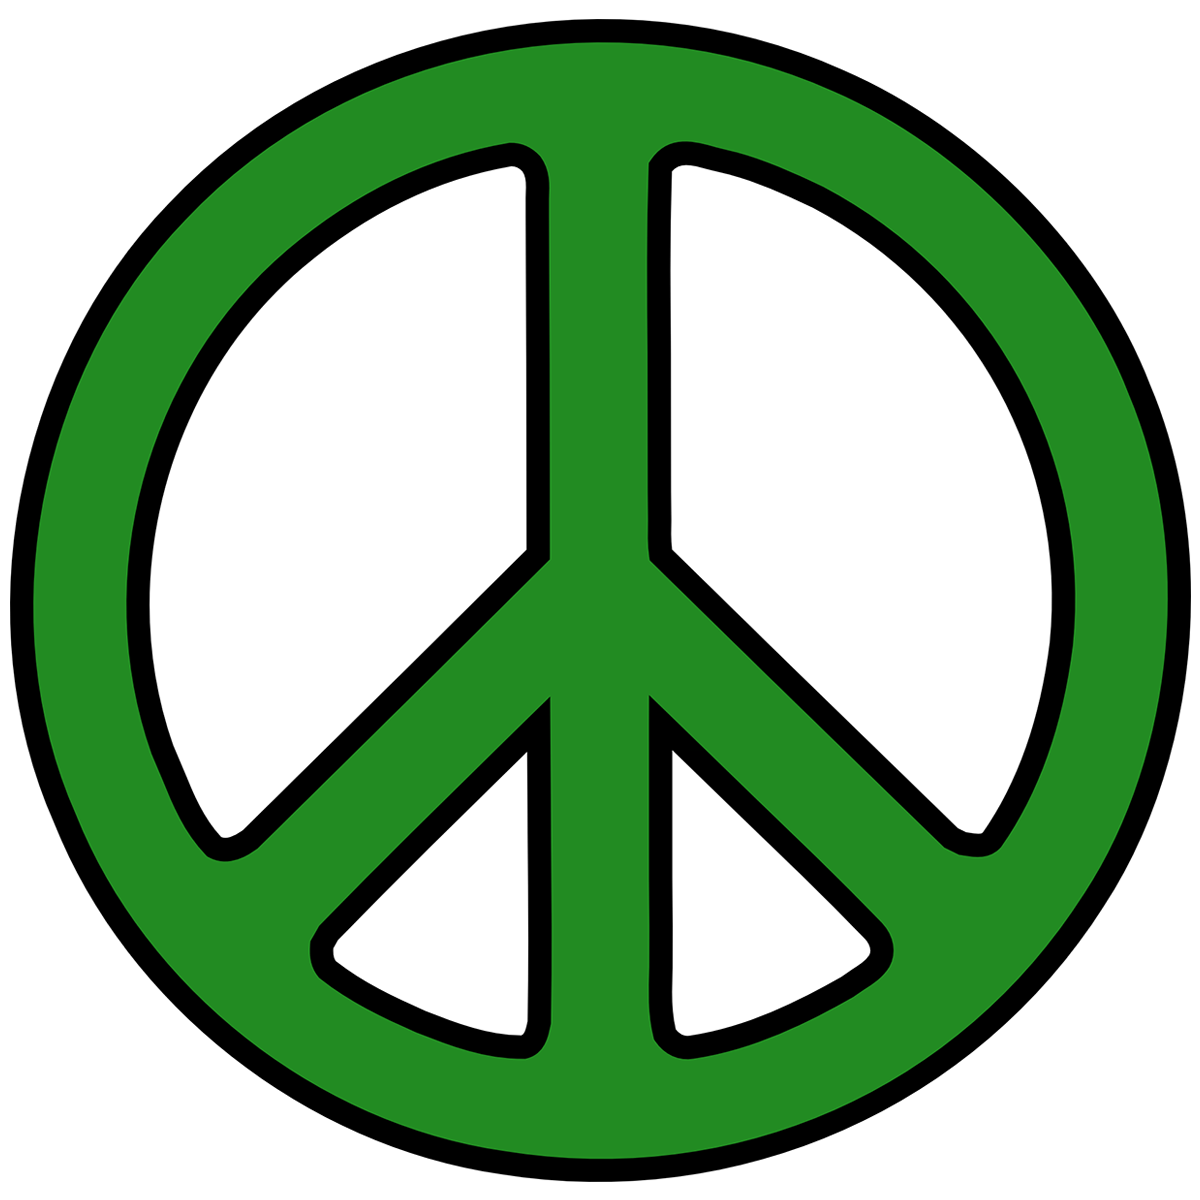 Green Peace Sign Filte...